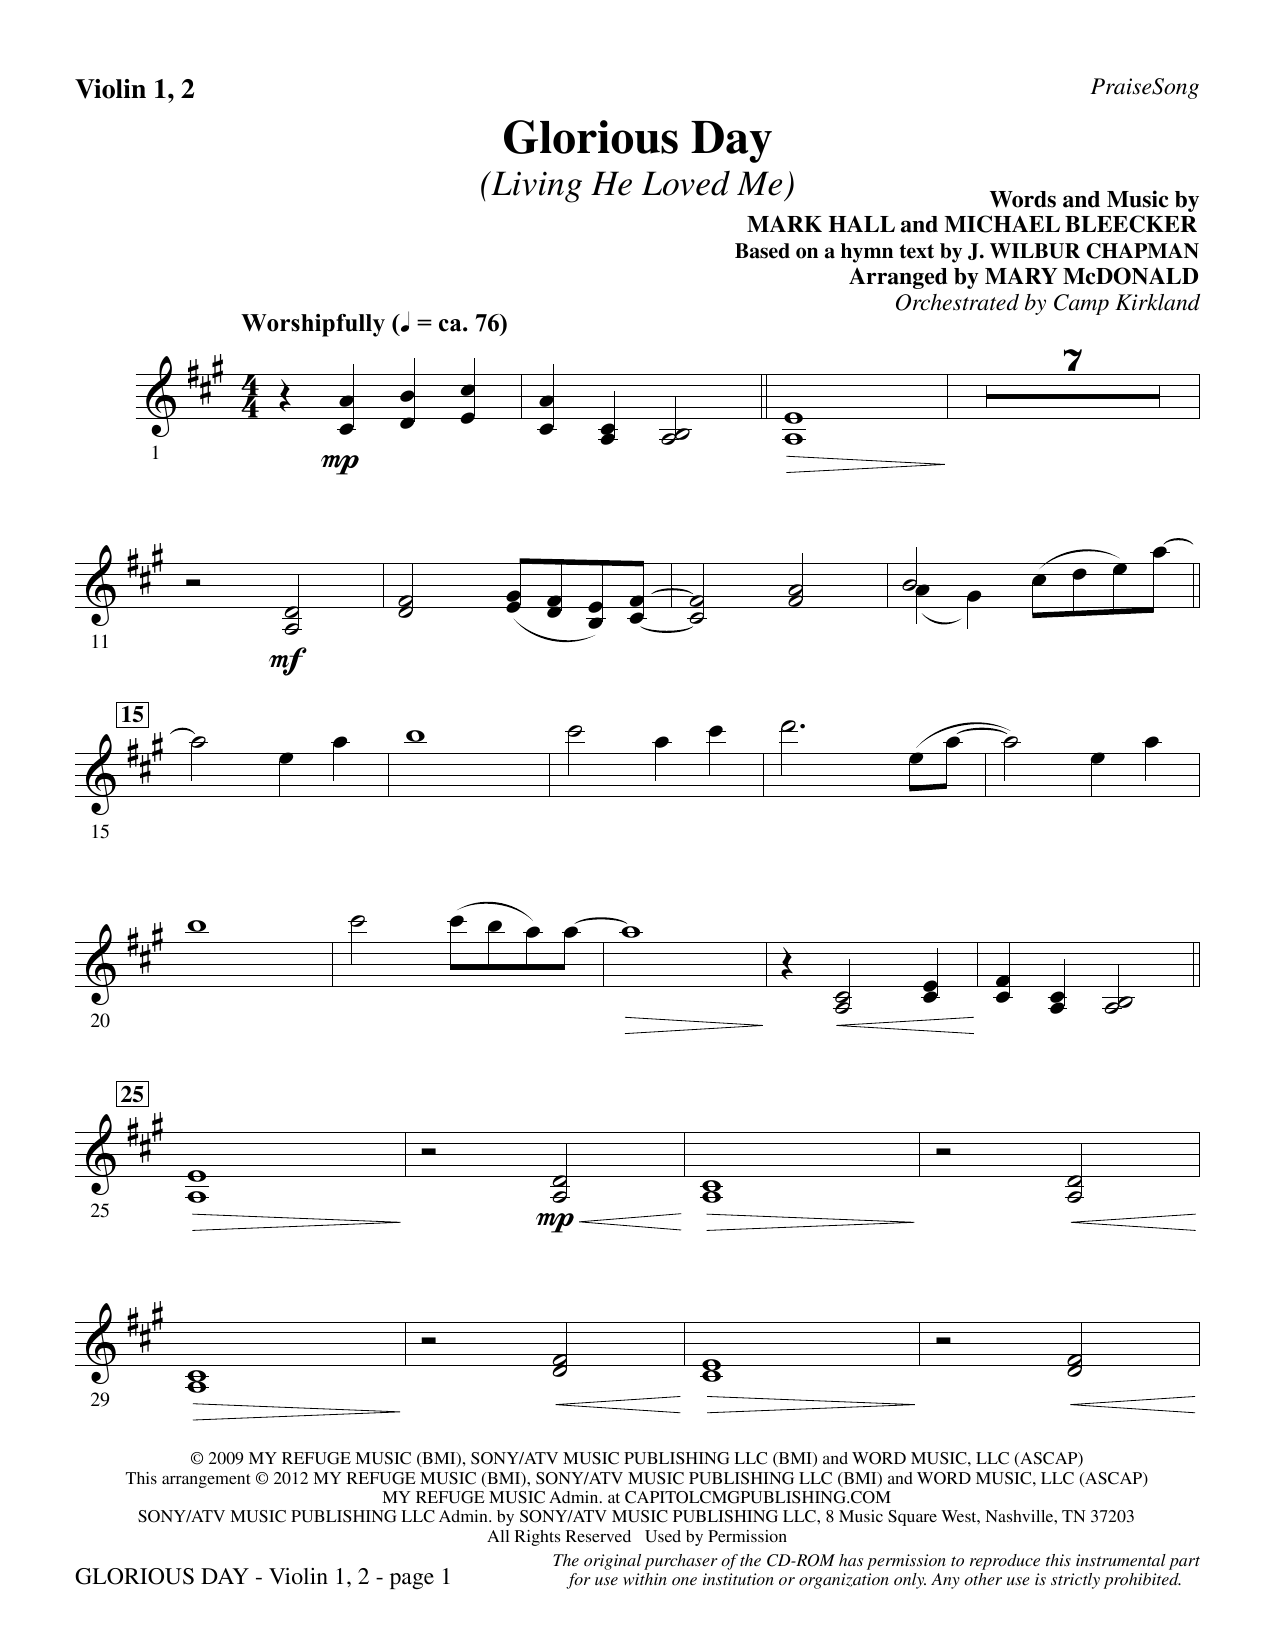 Glorious Day (Living He Loved Me) - Violin 1, 2 Sheet Music